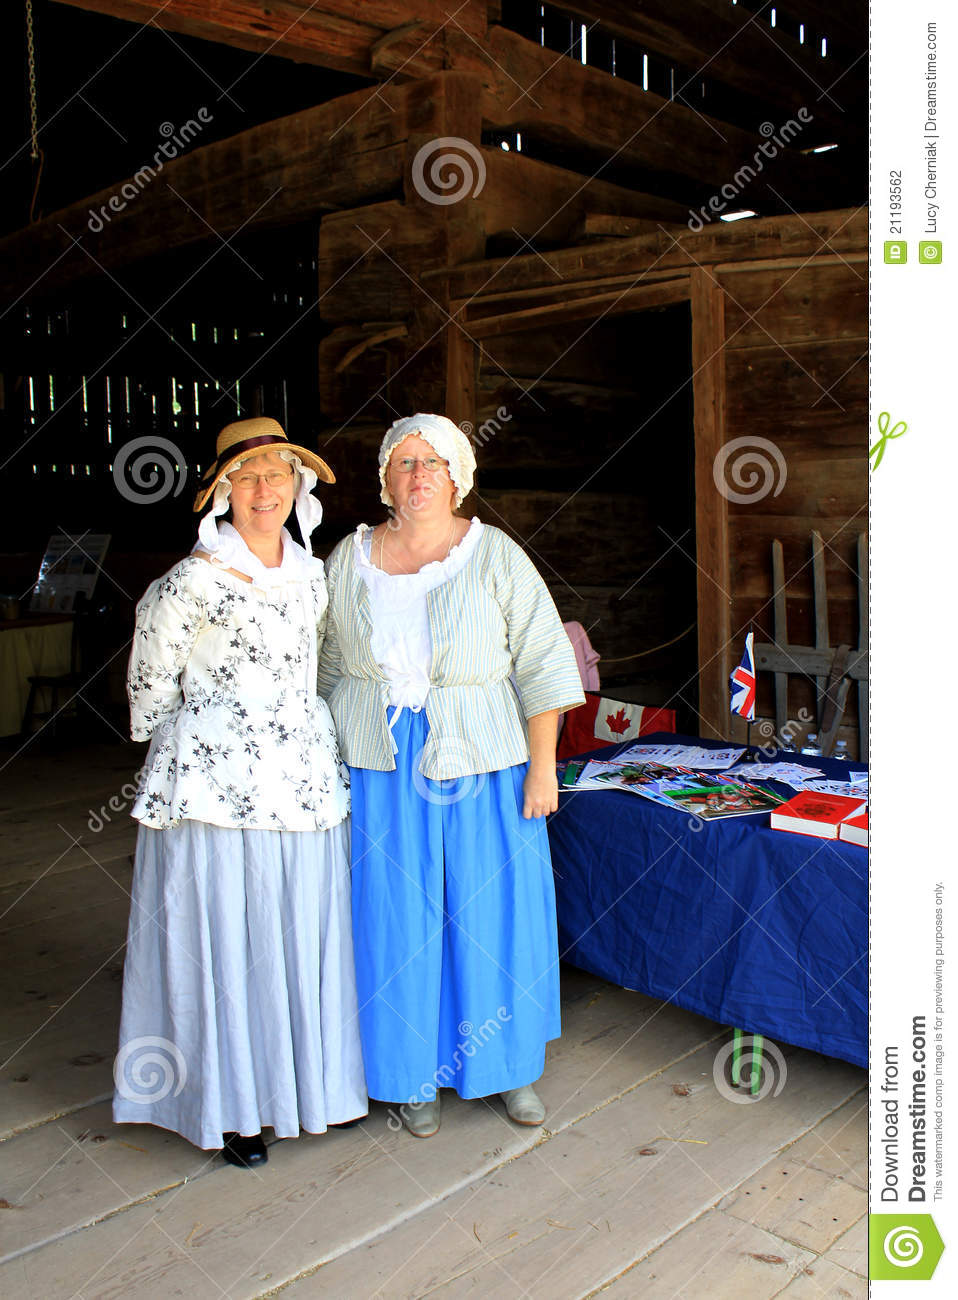 Two Women at Festival